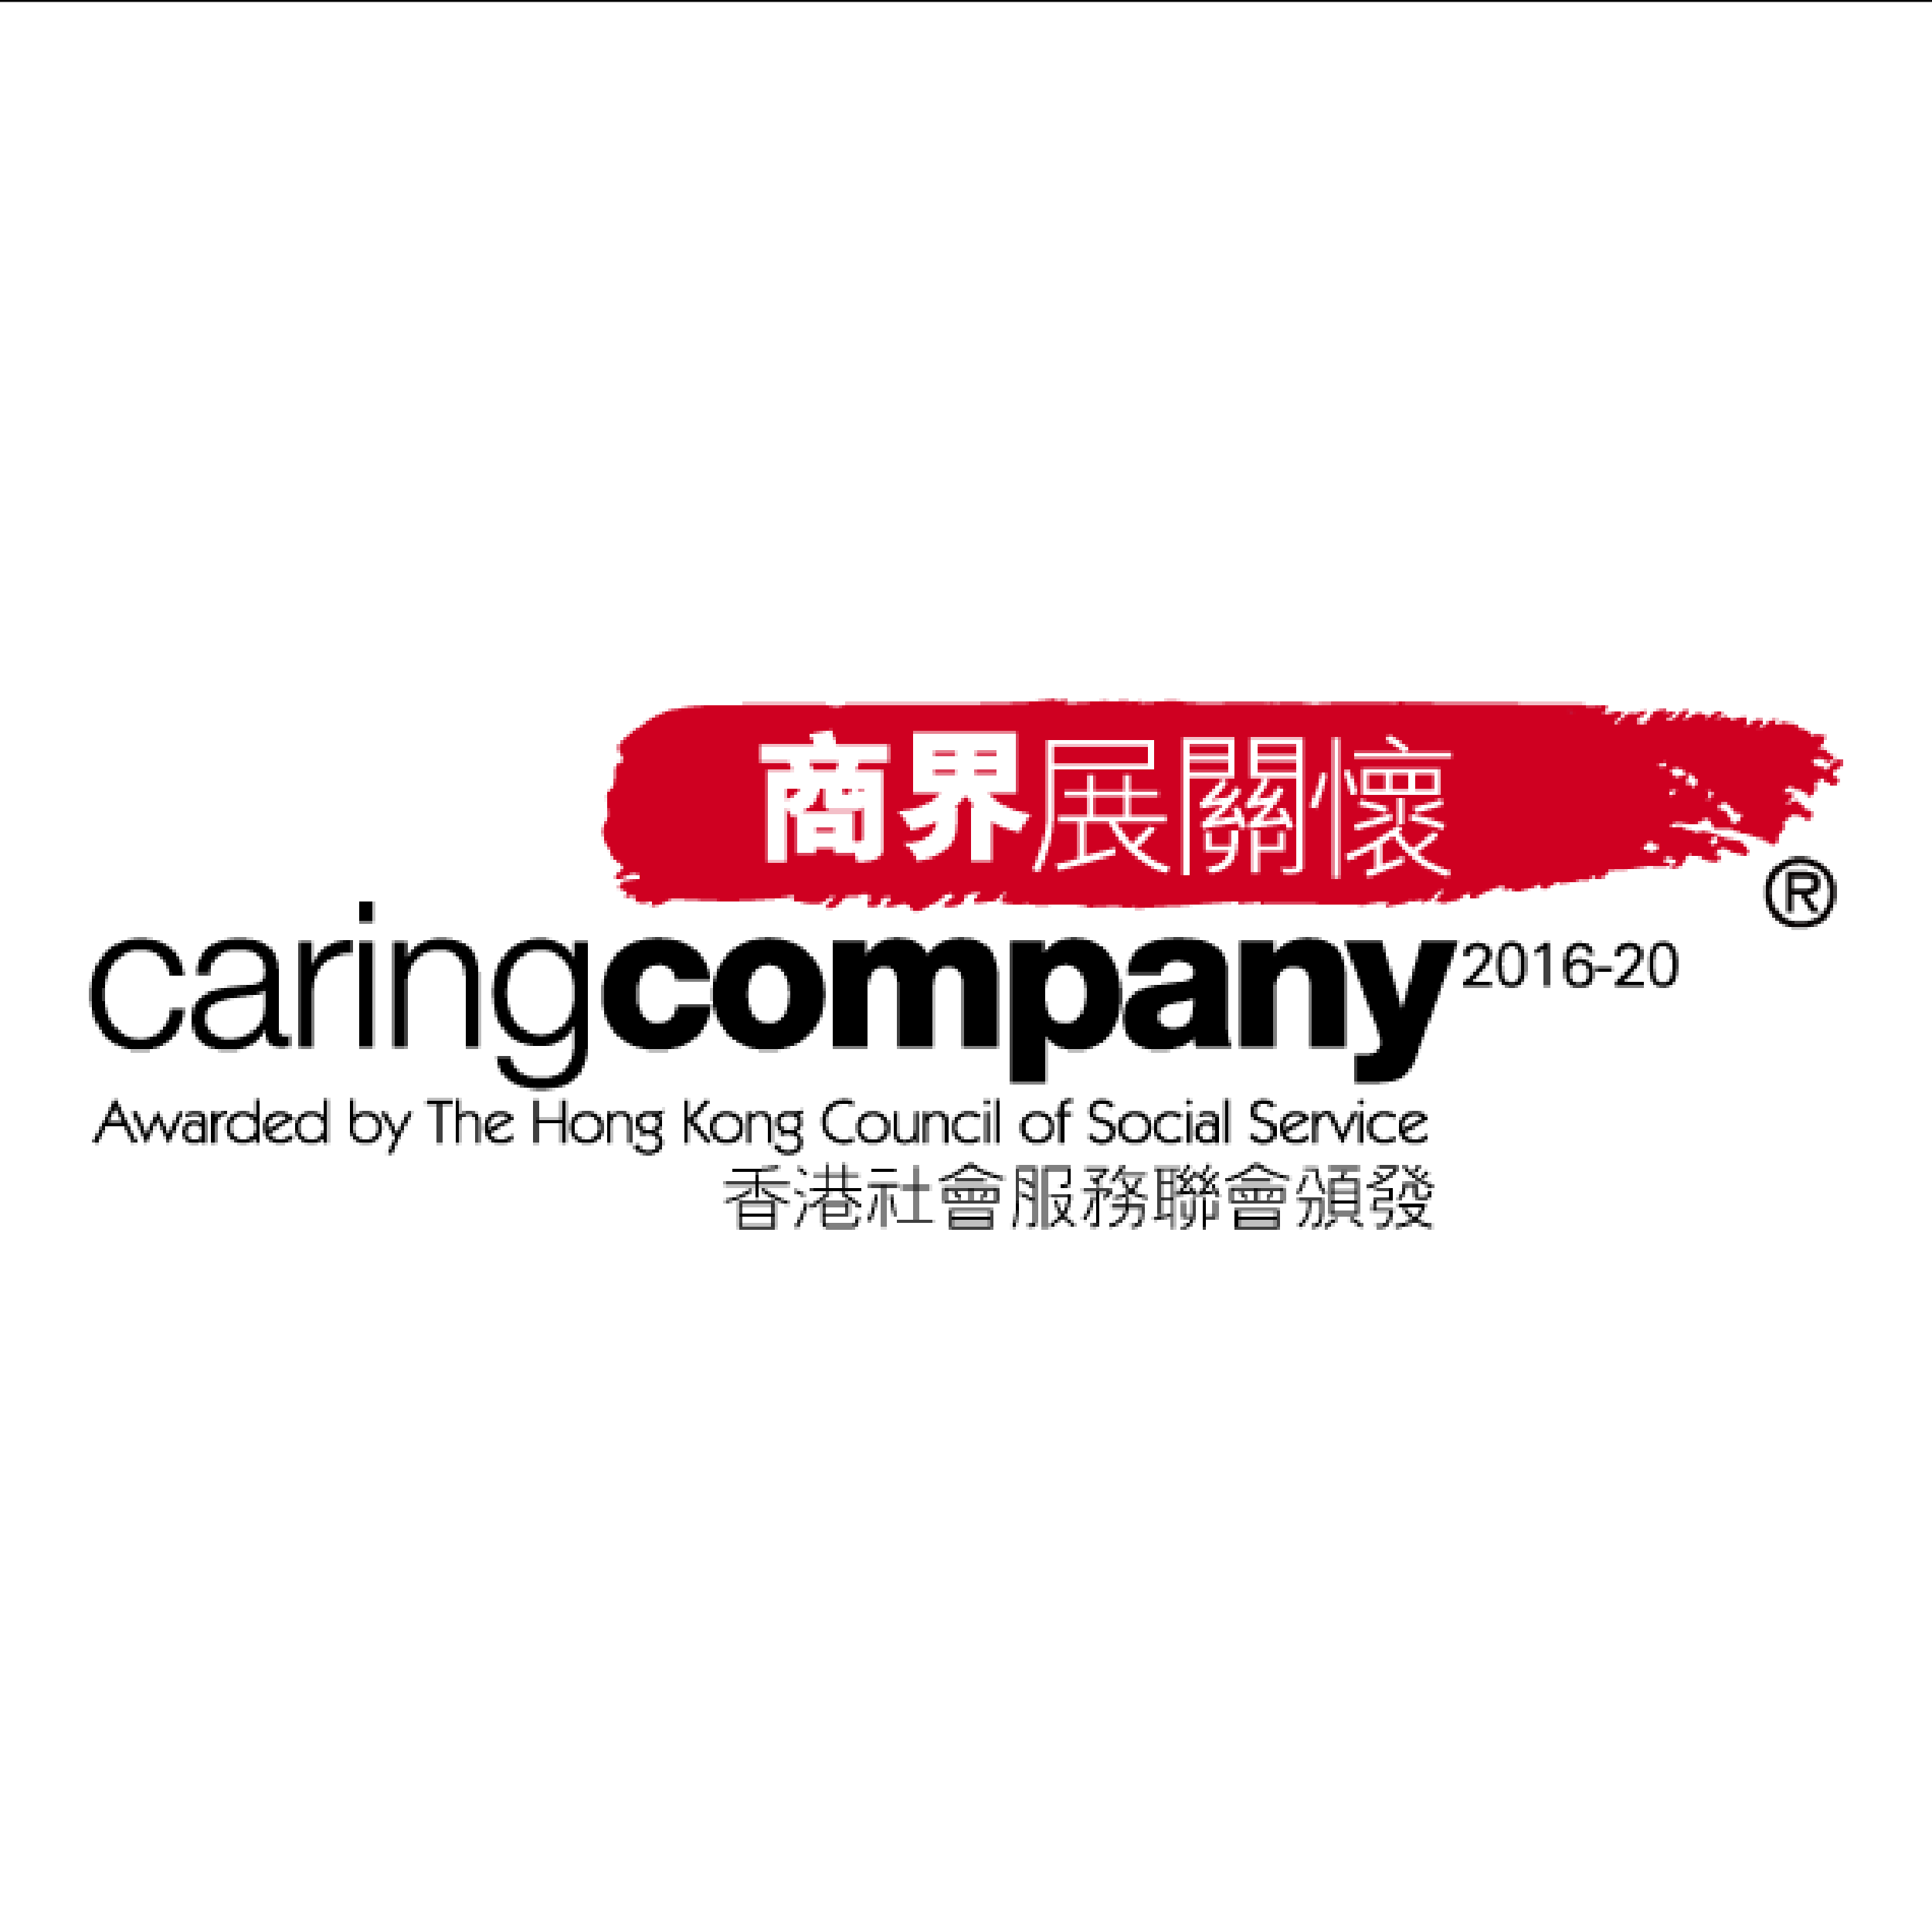 Caring Company Logo (4 years in a row) (2016-2020)